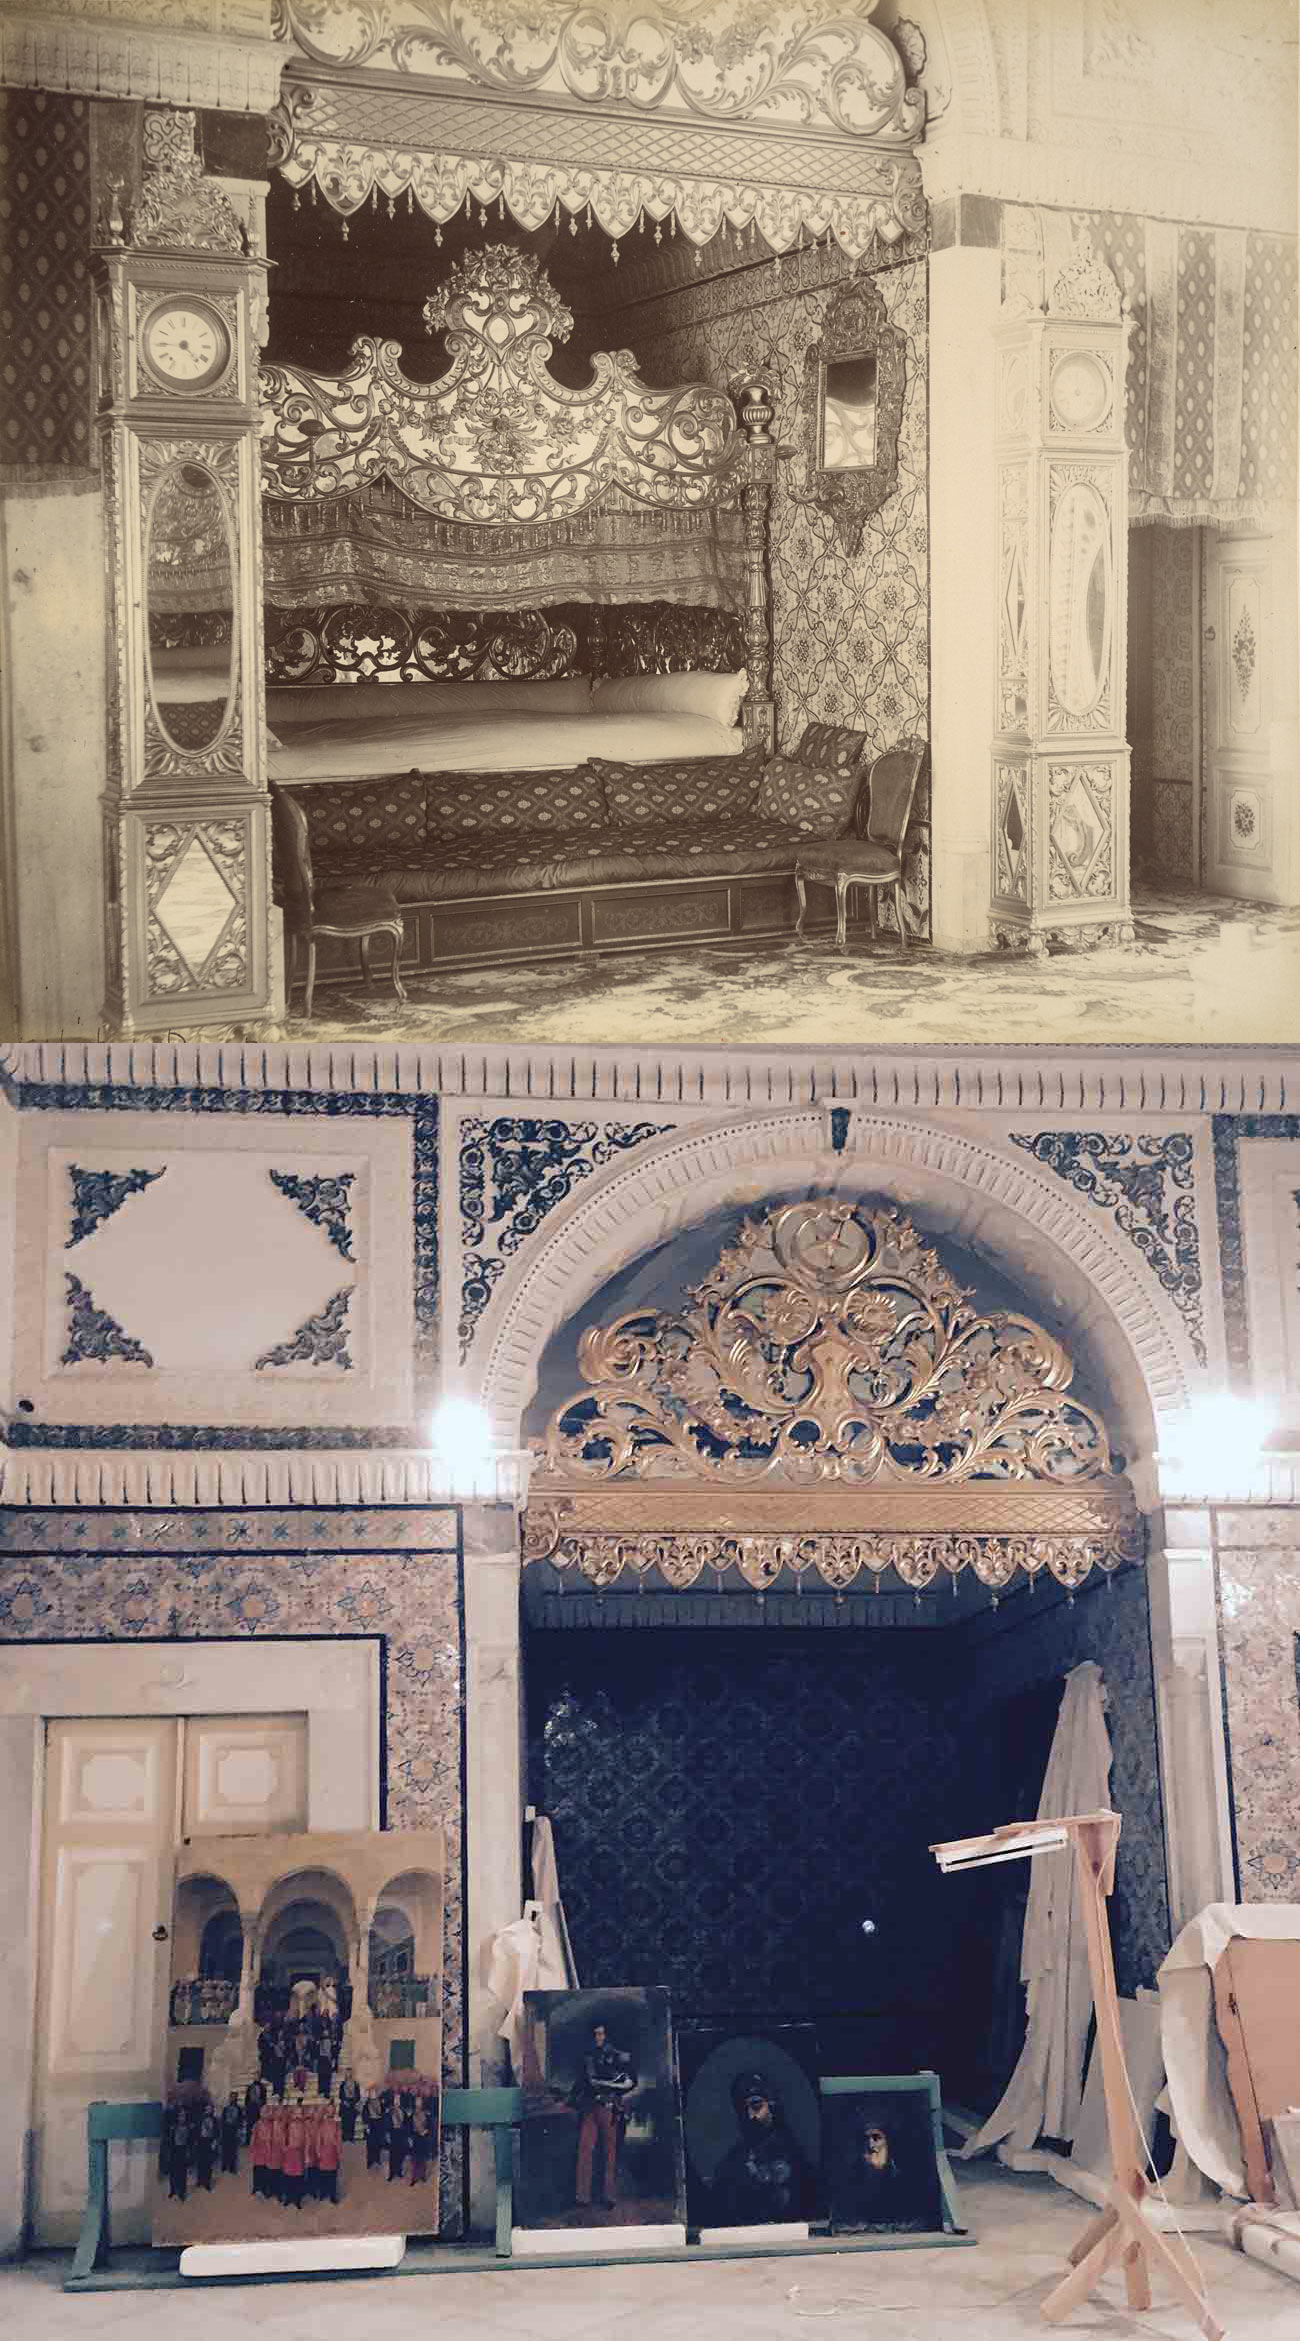 Two views of the same alcove in Qsar es-Saïd palace, one showing its original use as a bedroom and the other showing its later use as a storage cubby for paintings